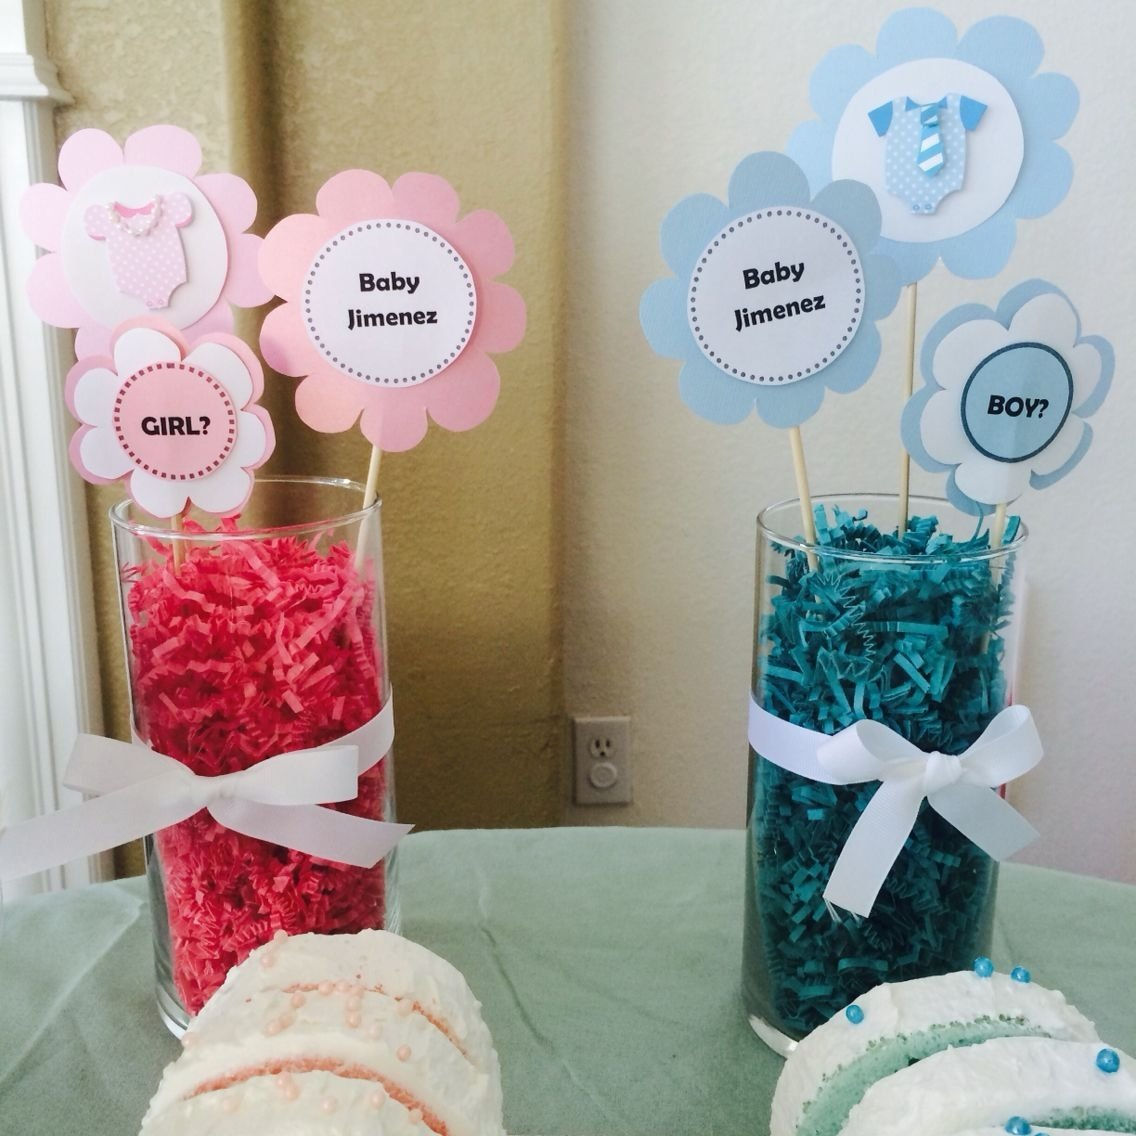 10 Ideal Gender Reveal Party Decoration Ideas diy centerpieces for gender reveal party gender reveal party ideas 1 2020